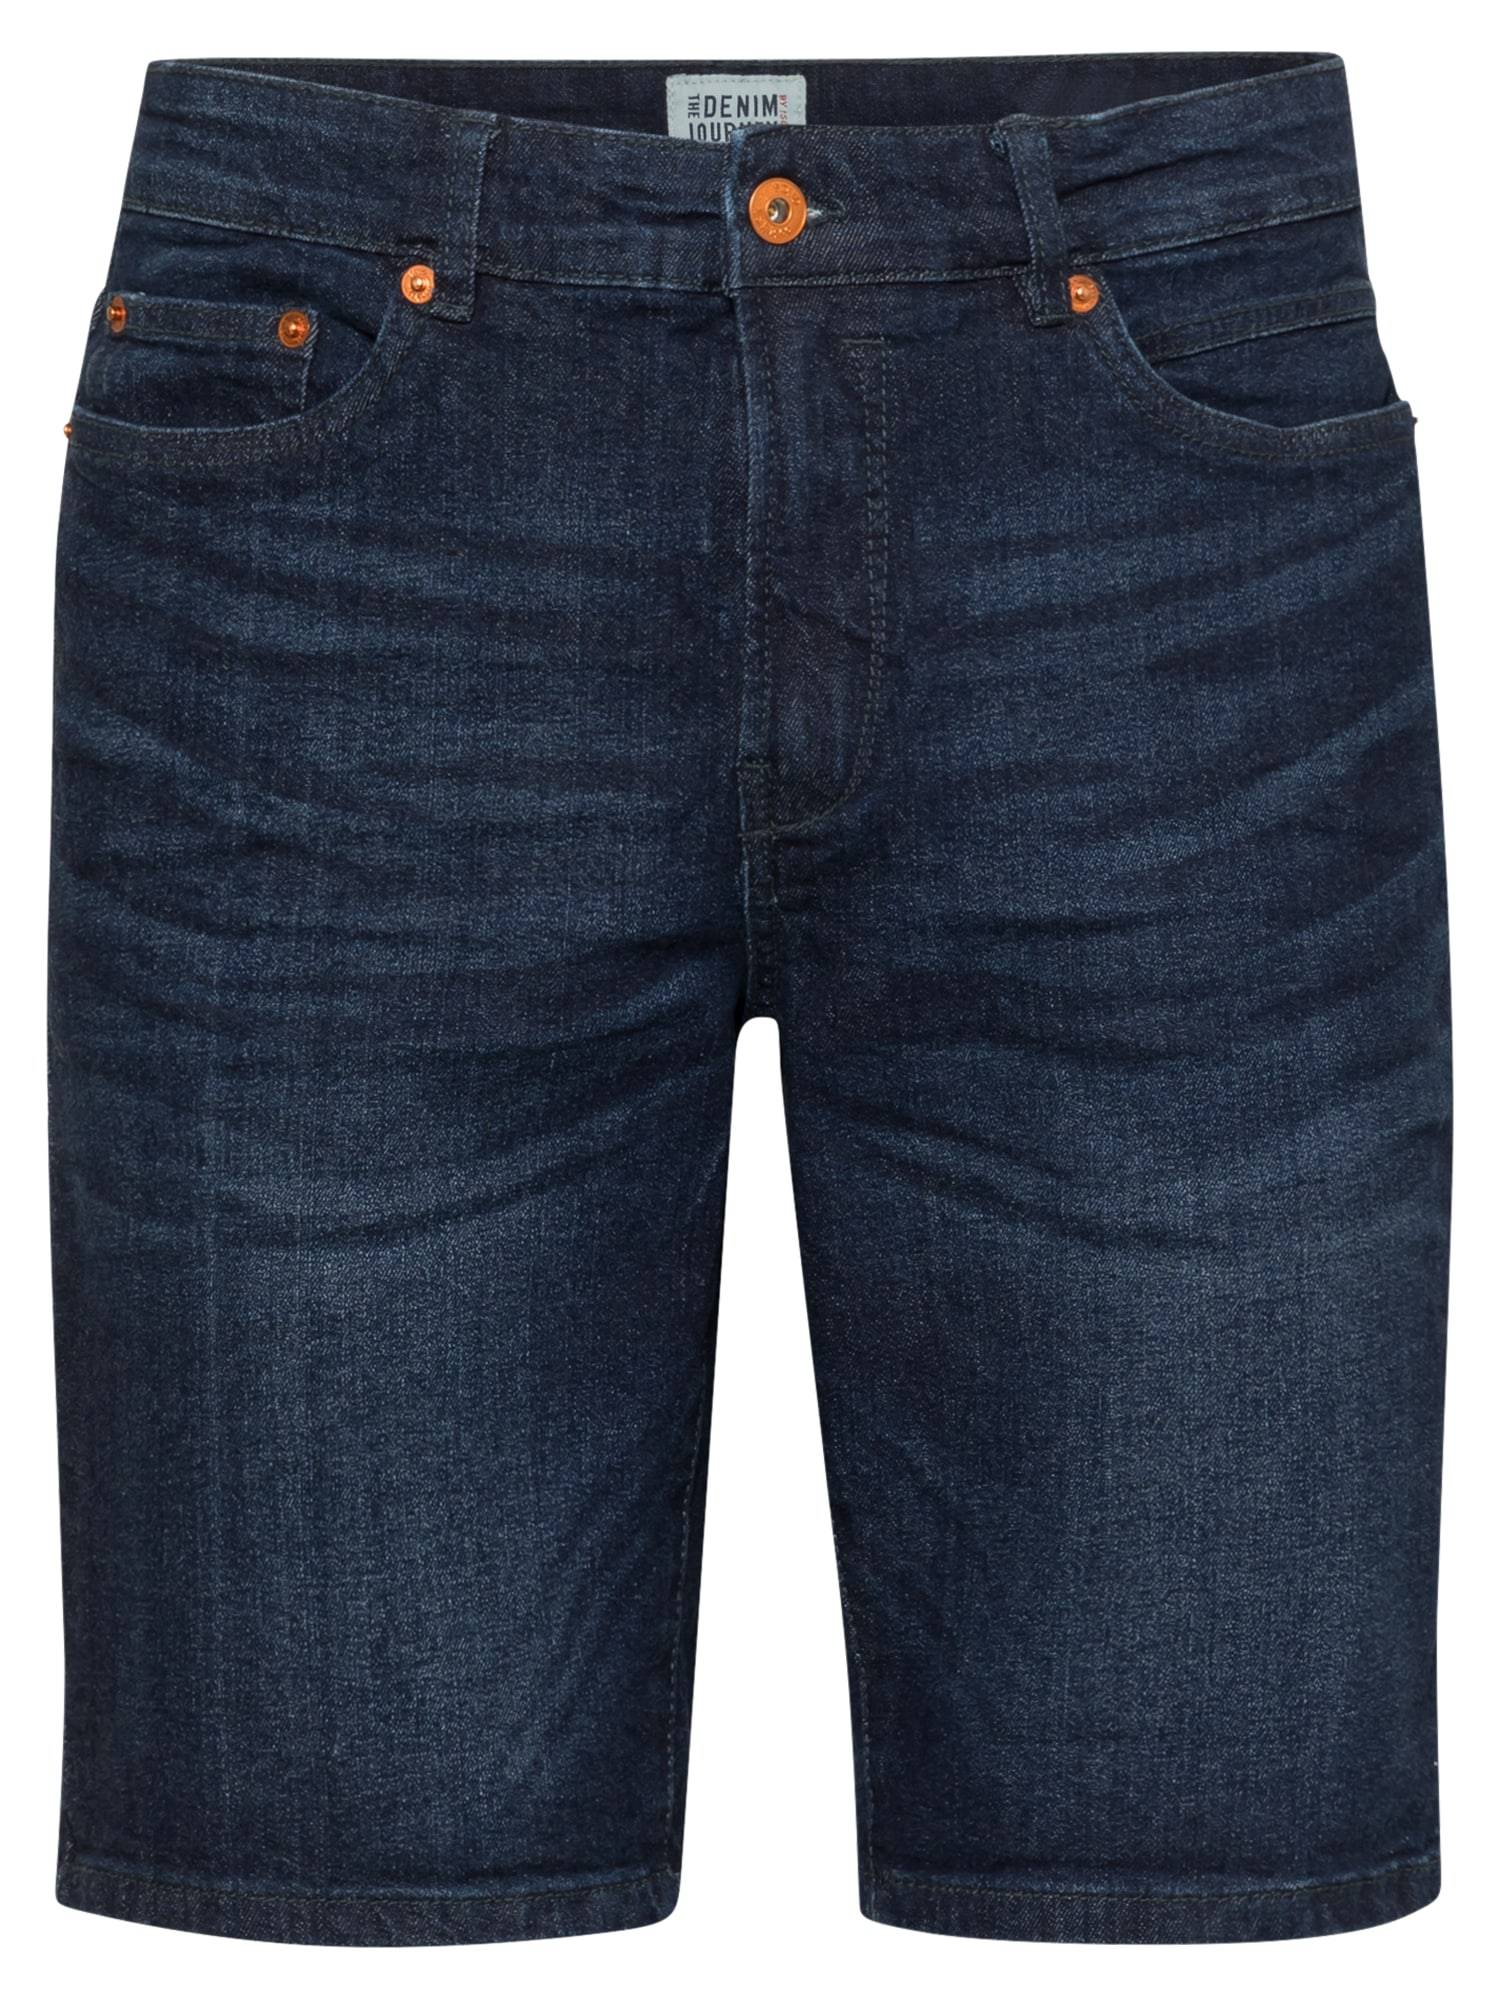 !Solid Jean 'Ryder'  - Bleu - Taille: 31-32 - male